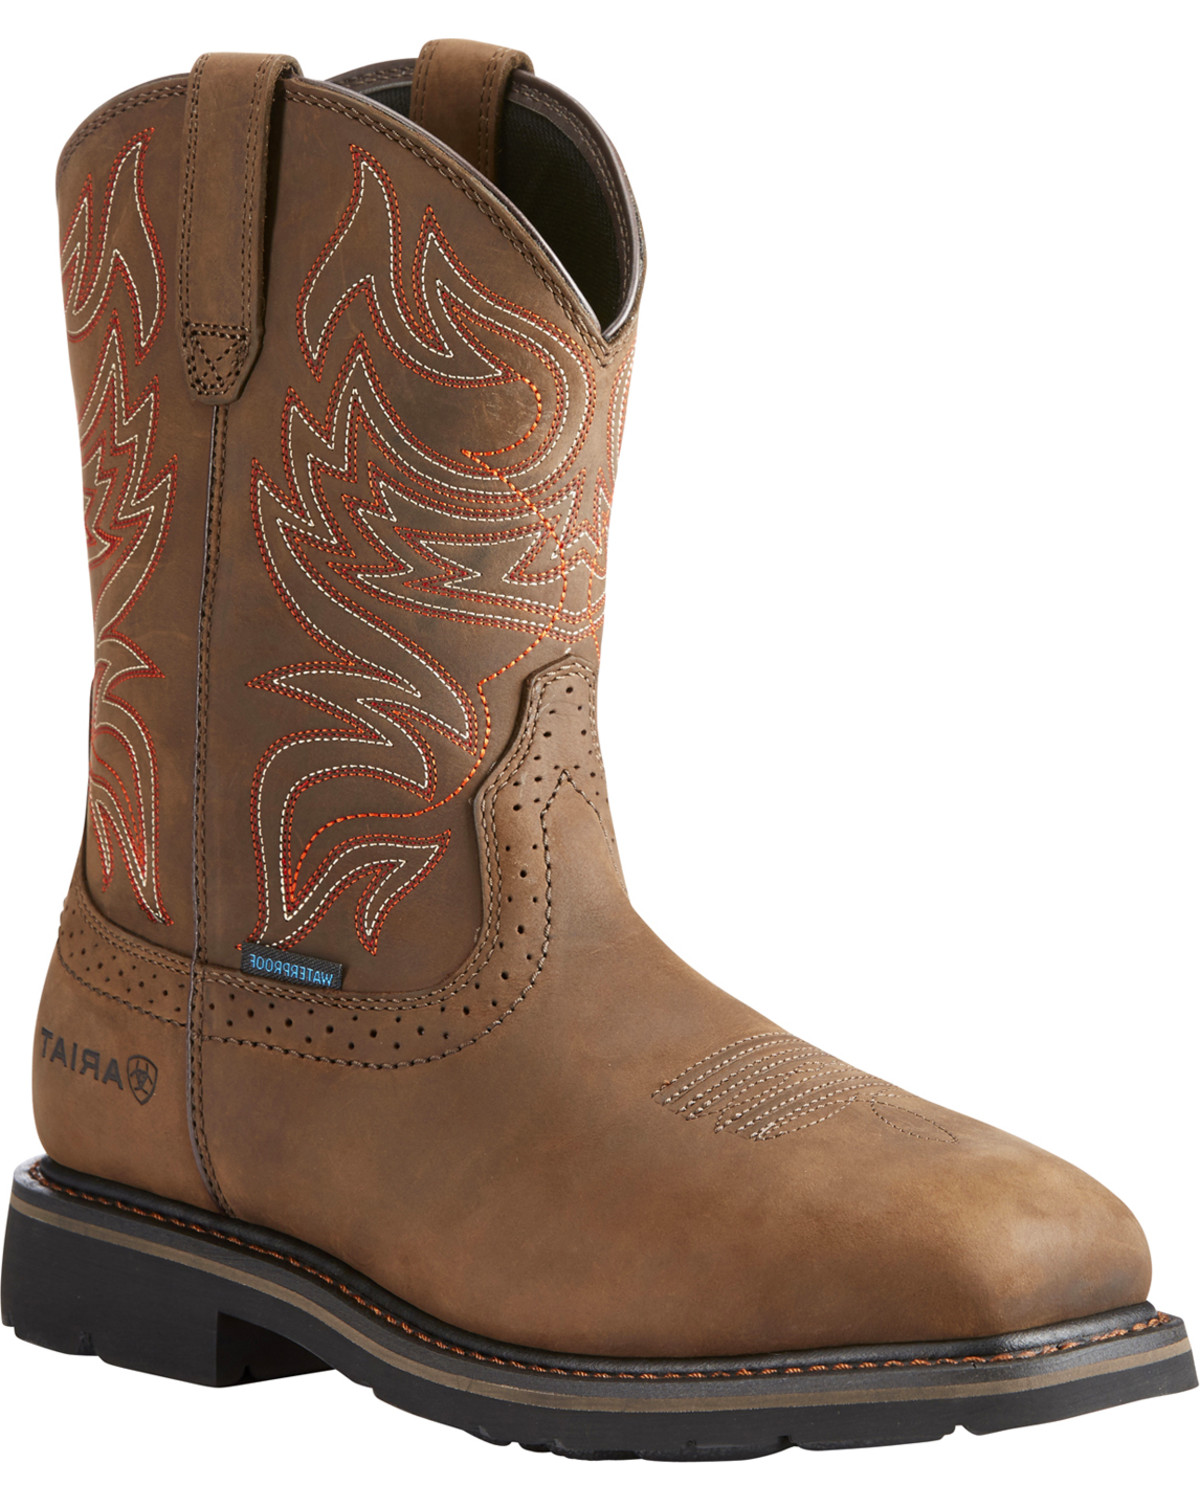 17b82ddbc84 Ariat Men's Brown Sierra Delta Waterproof Western Boots - Square Toe